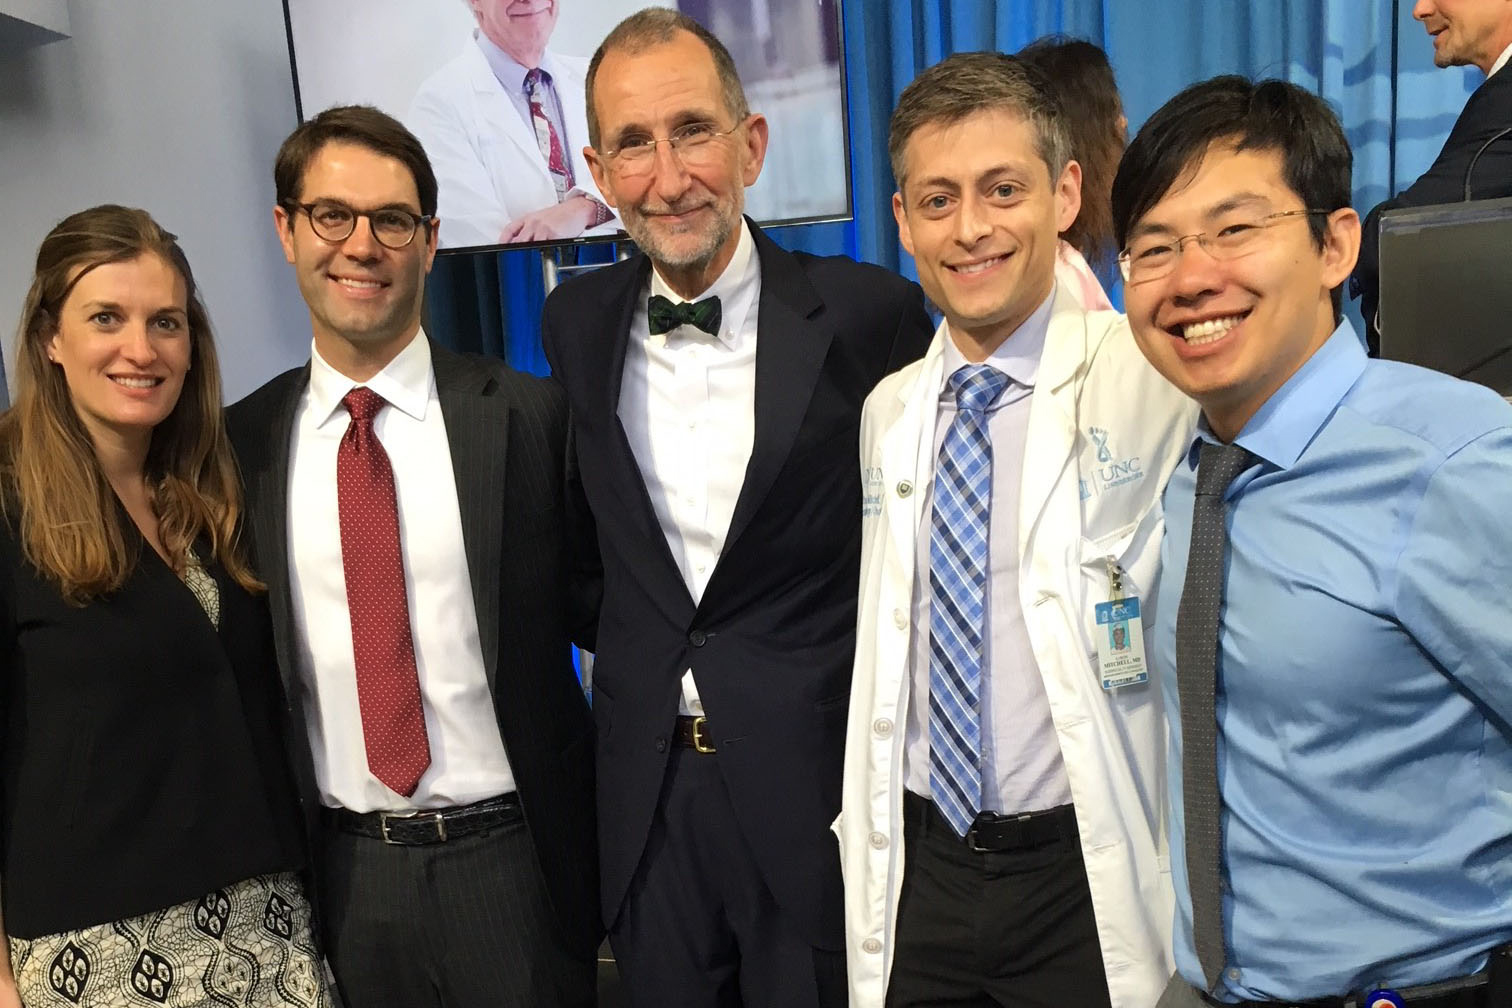 The 2018 Pope Clinical Fellows Awards recipients are Kate Westmoreland, MD, C. Tyler Ellis, MD, Aaron Mitchell, MD, and Kyle Wang, MD. They are pictured with UNC Health Care CEO William L. Roper, MD, MPH.